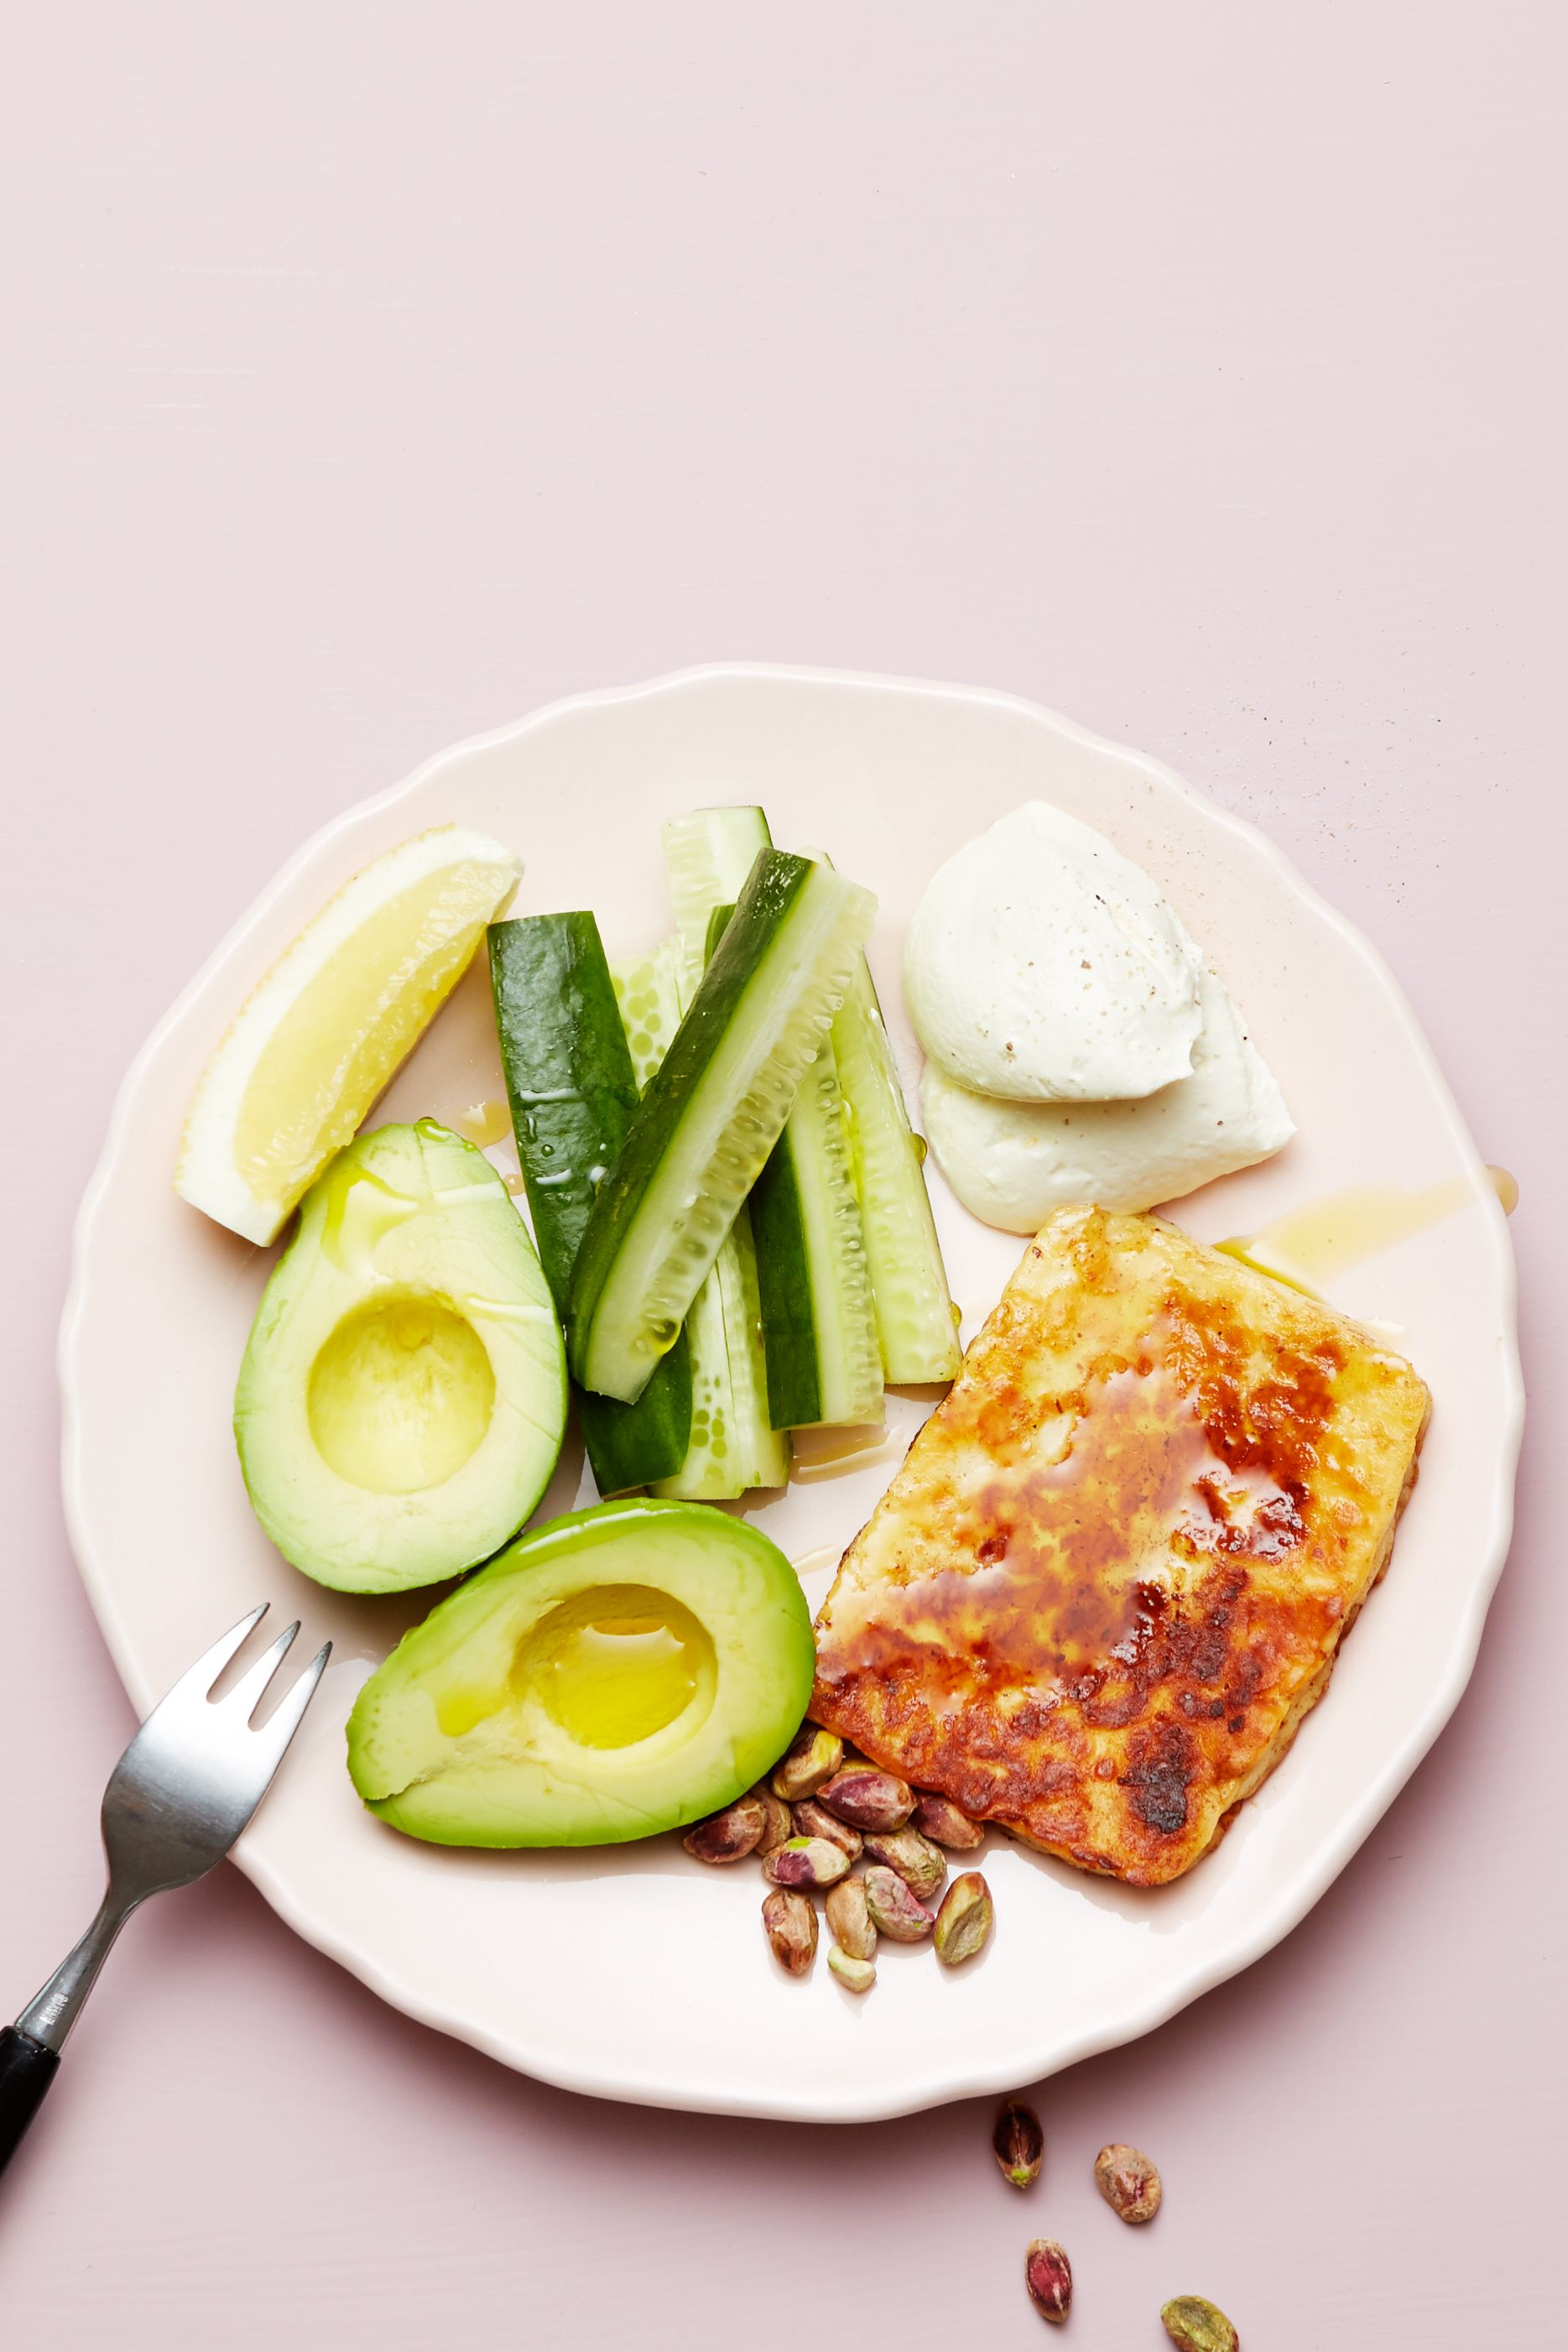 Keto Halloumi Cheese And Avocado Plate Recipe Diet Doctor Recipe Diet Recipes Ketogenic Diet Meal Plan Diet Meal Plans